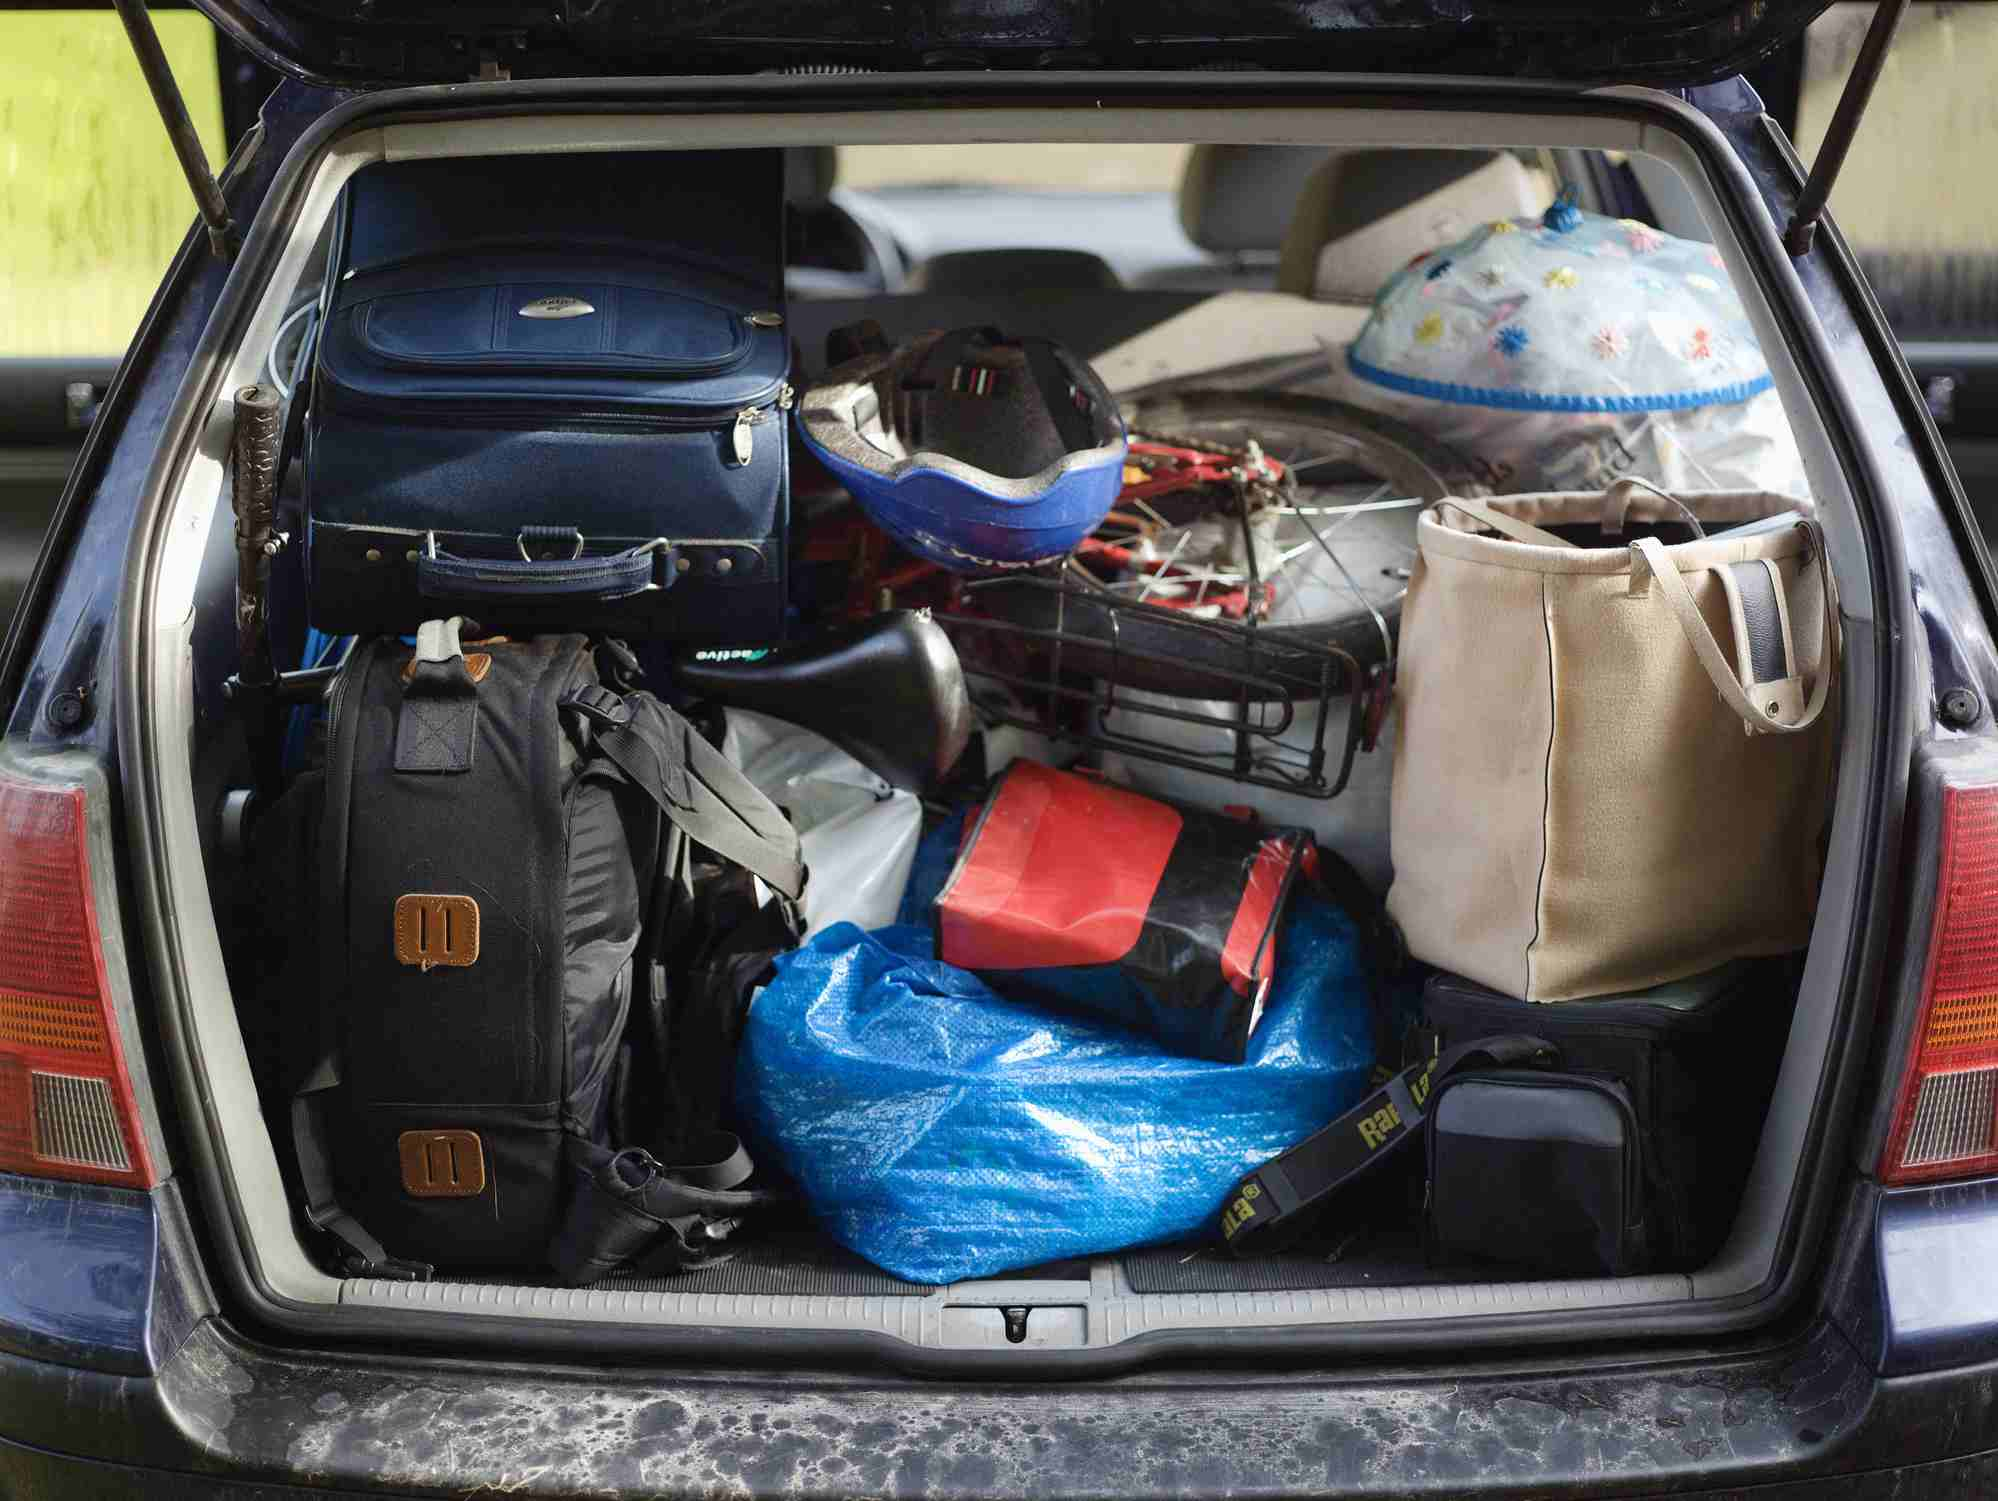 A car with a fully packed trunk full of suitcases.